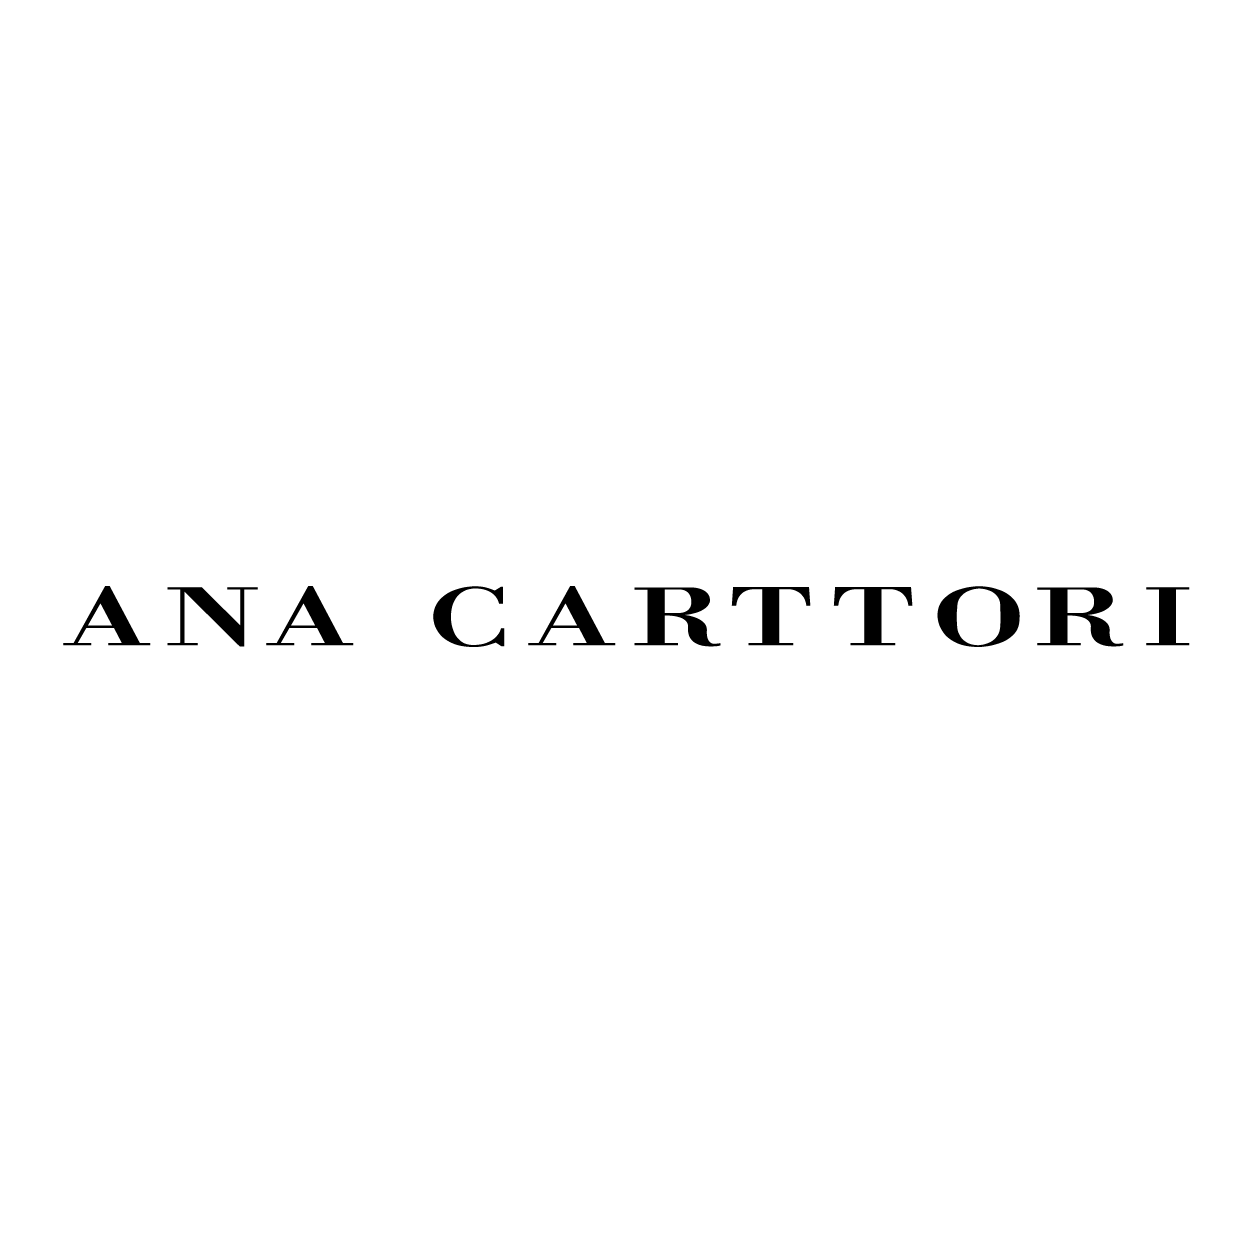 Ana Carttori, Inc.